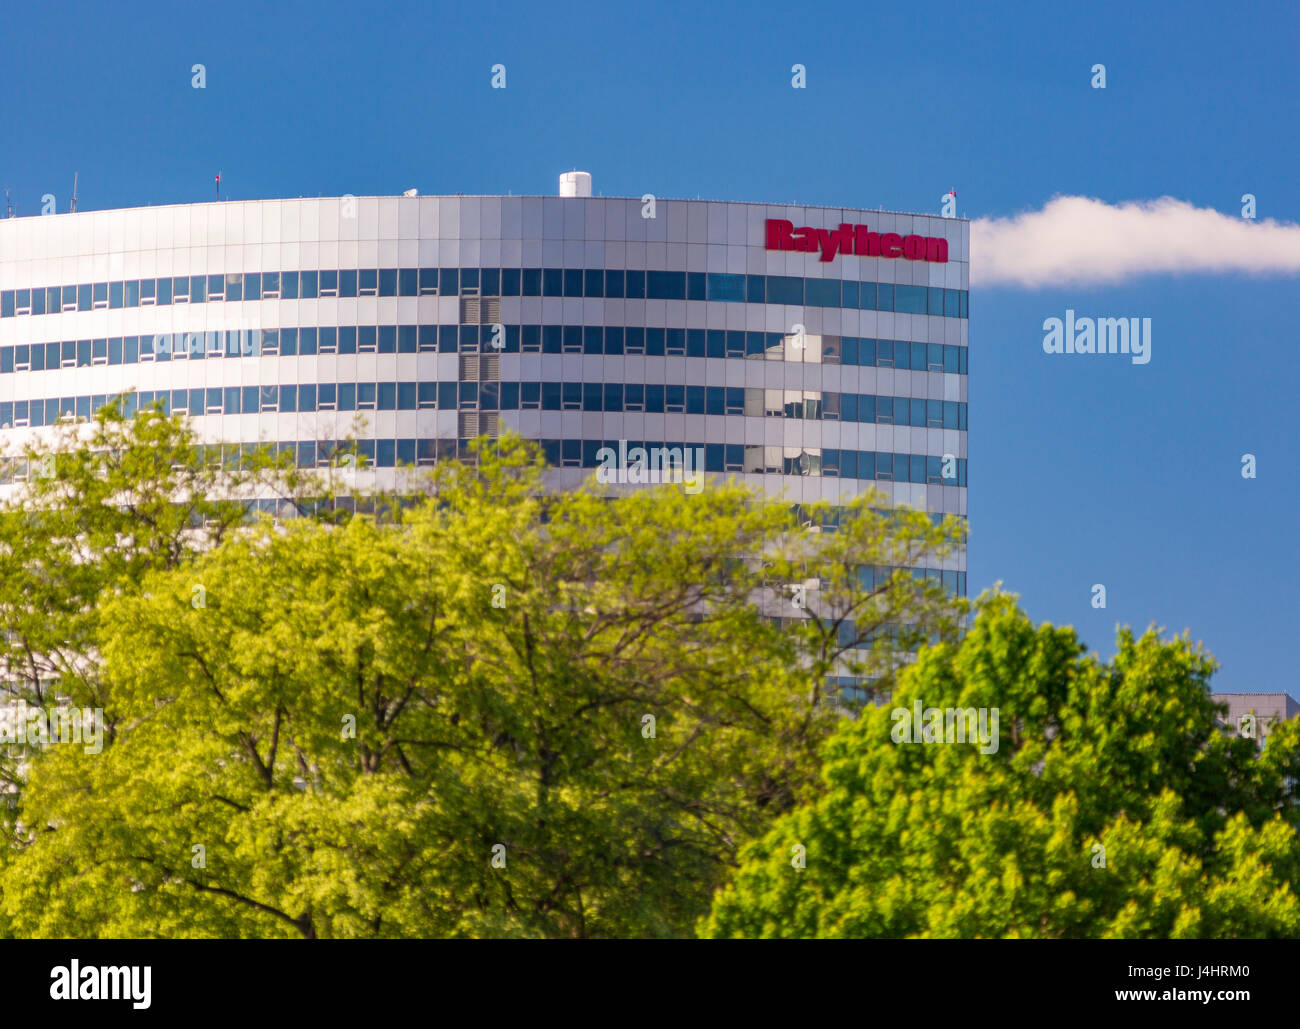 ROSSLYN, VIRGINIA, USA - Modern building with Raytheon sign. - Stock Image